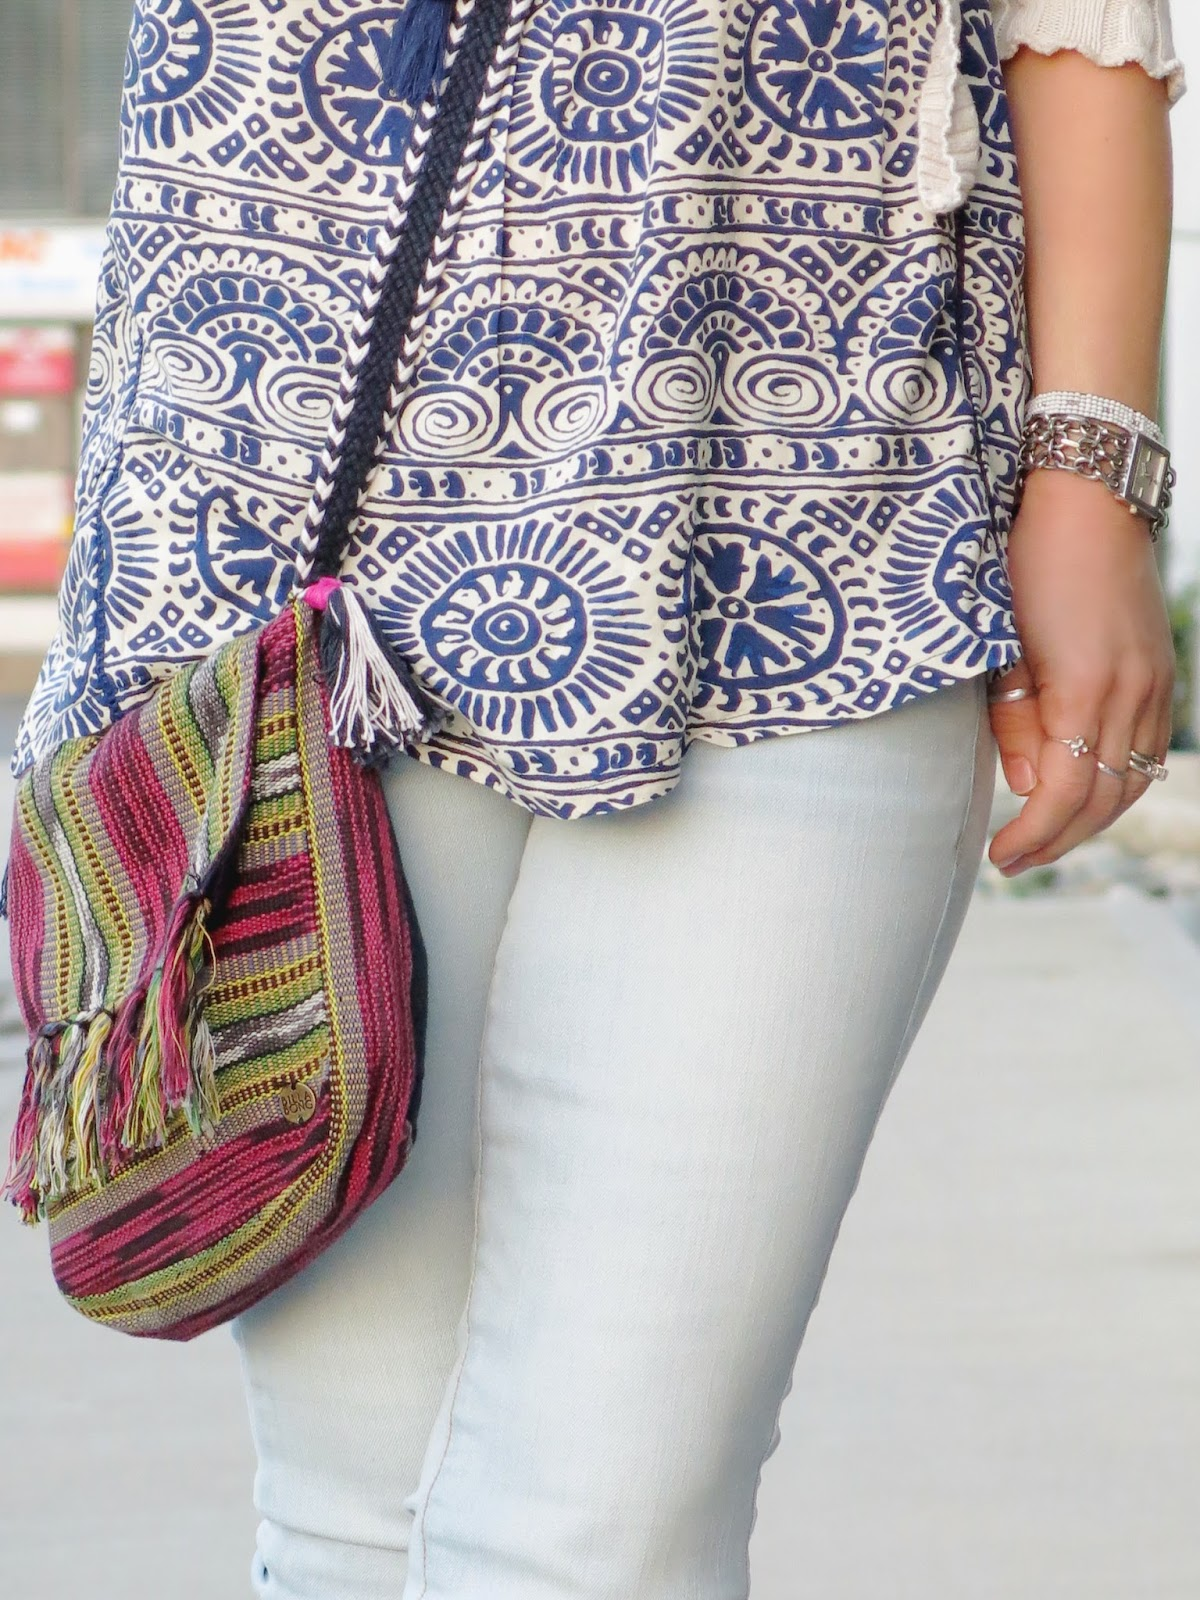 styling bleached skinny jeans with a peasant-style tank top and woven crossbody bag